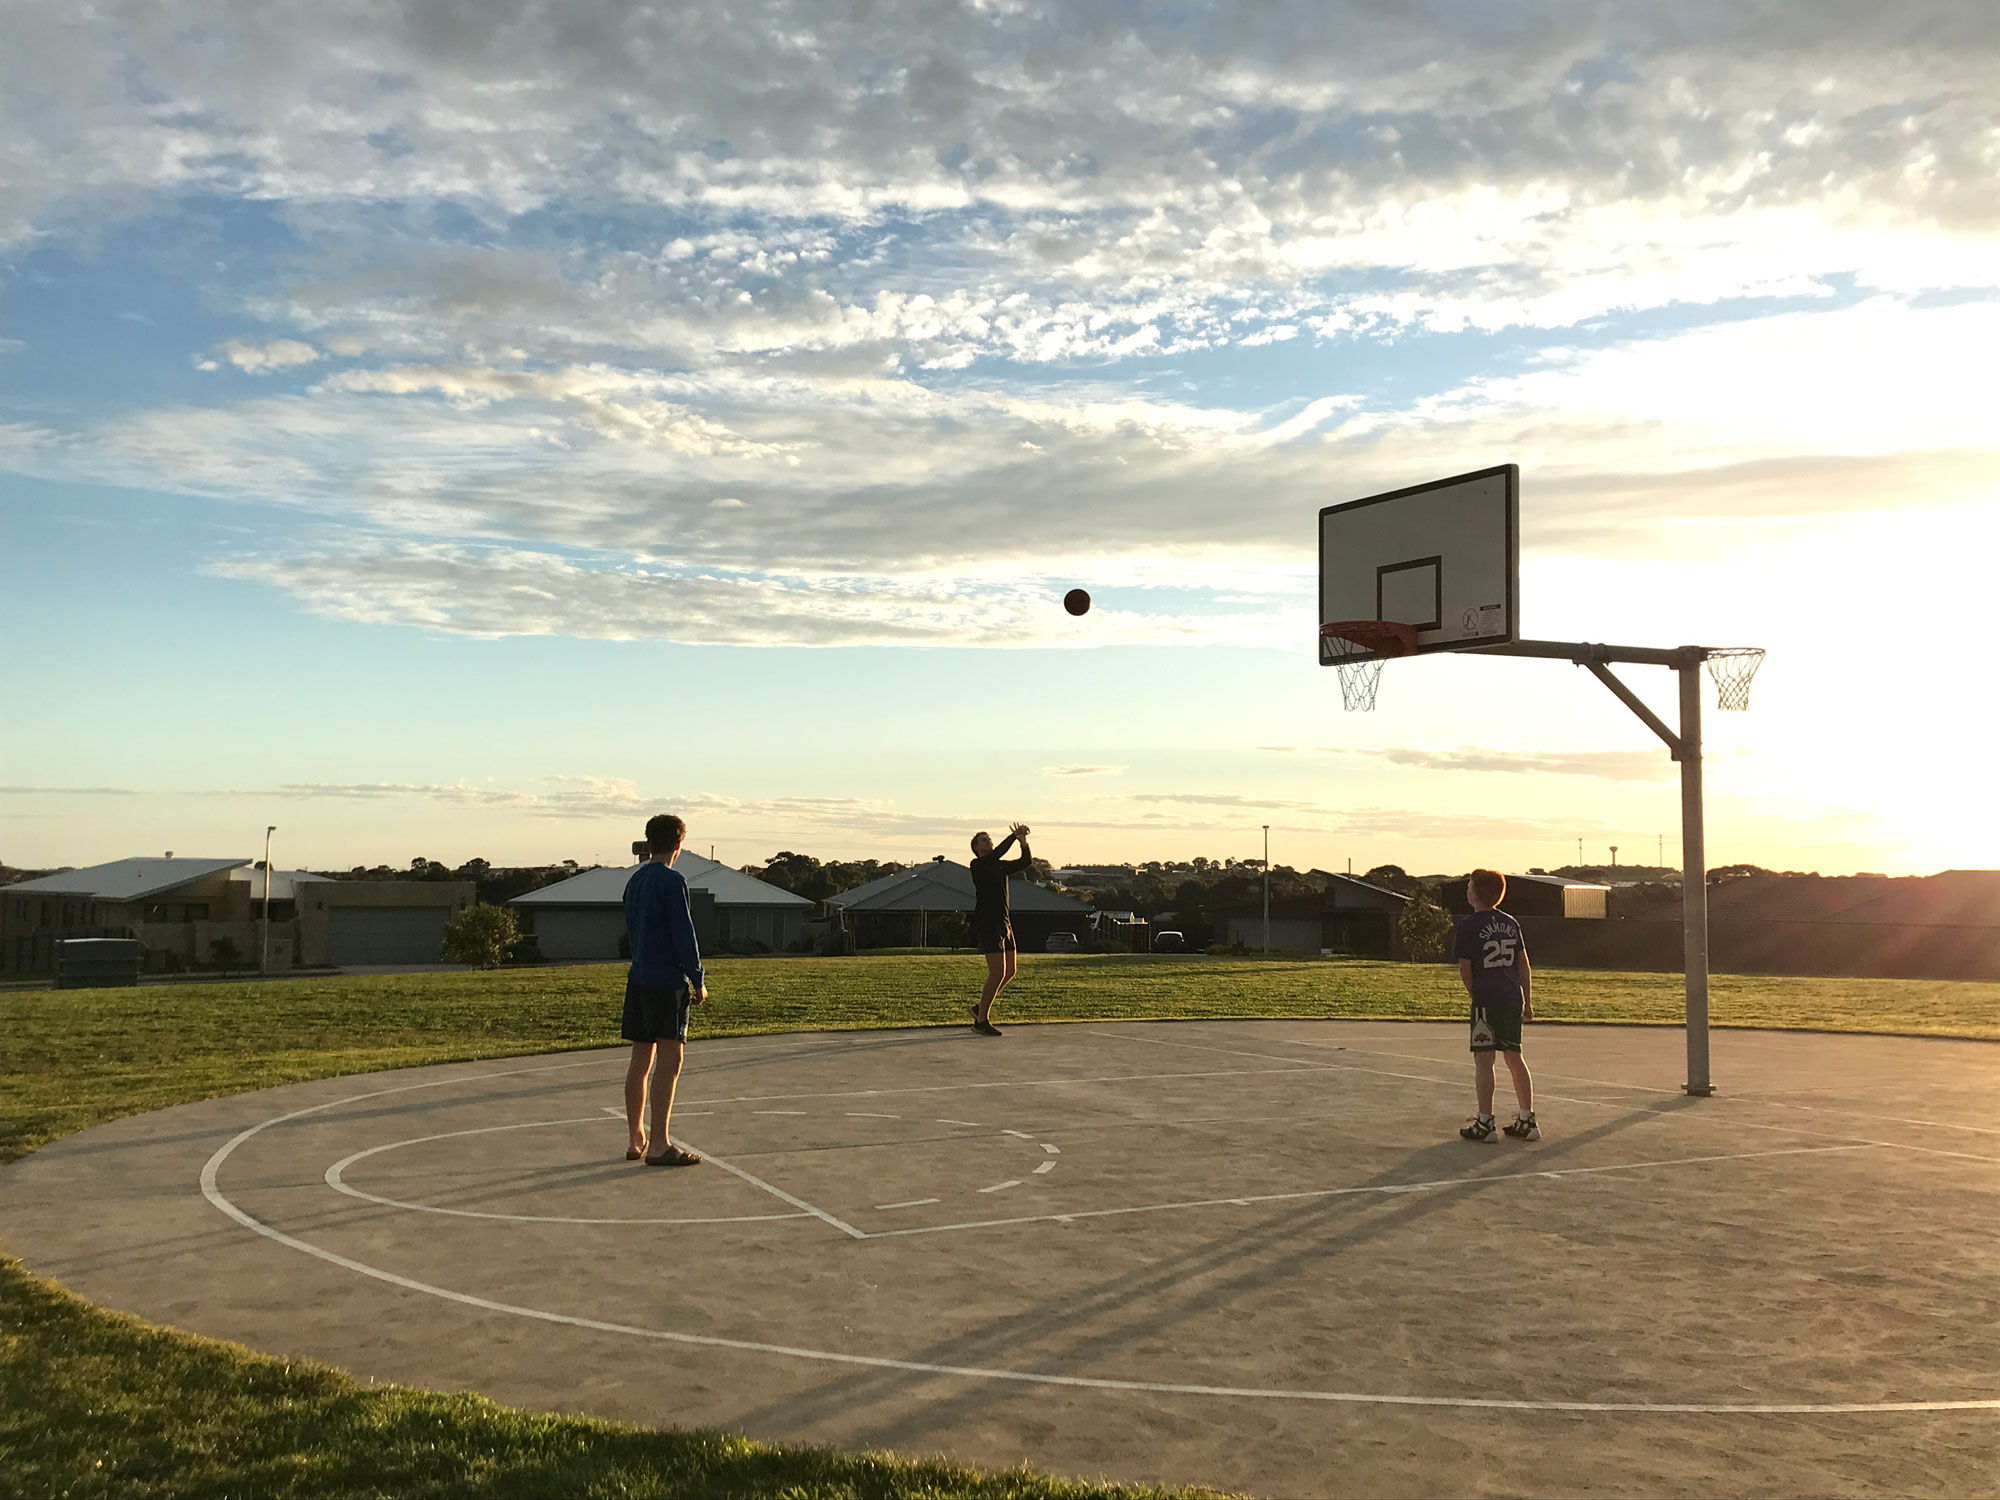 wollaston-way-warrnambool-land-for-sale-estates-basketball-playground-warrnambool